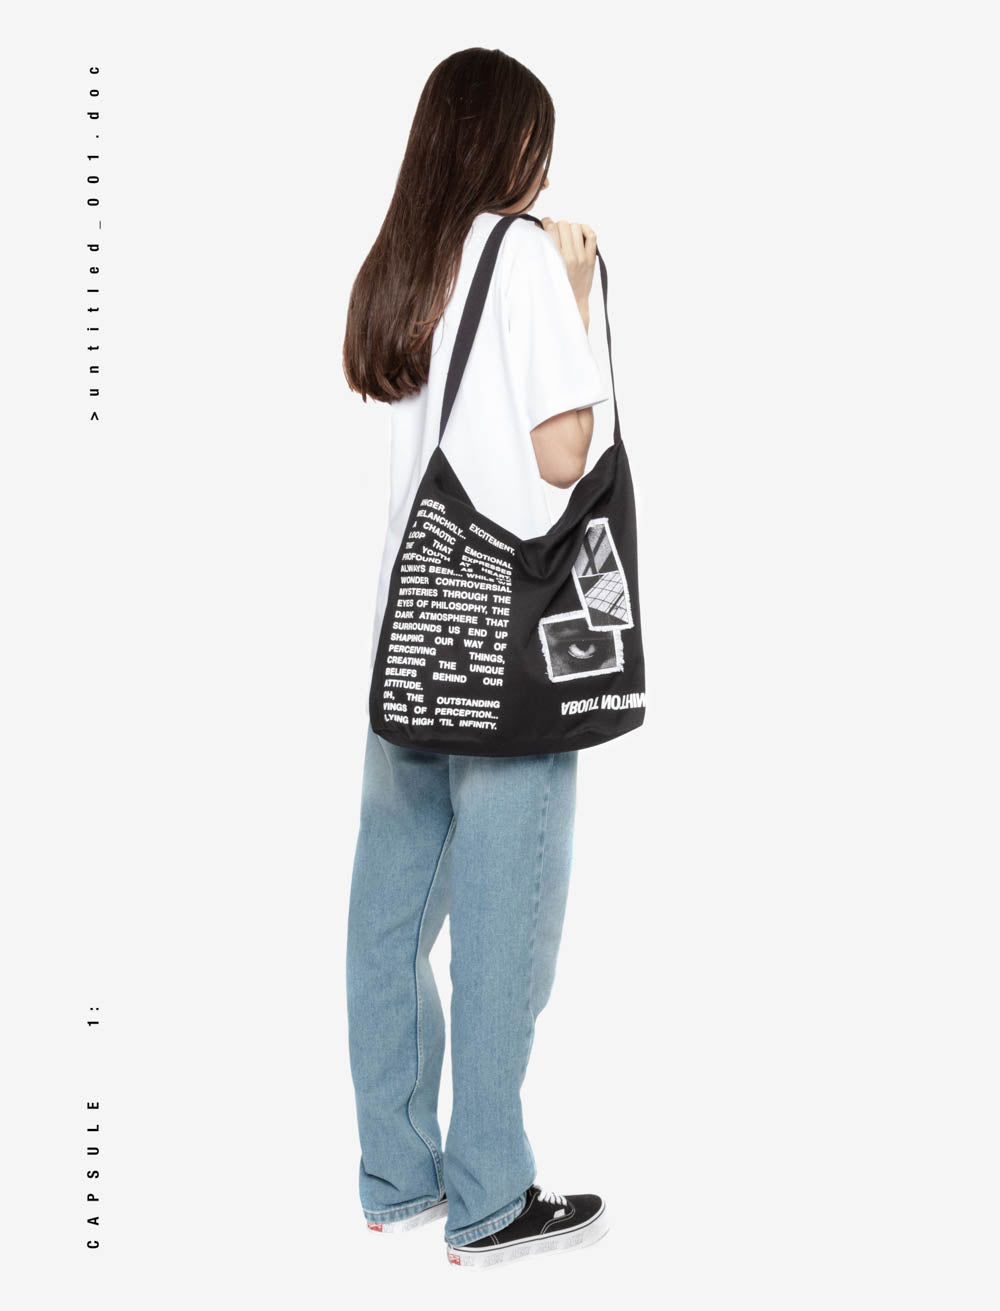 EYES AND SURROUNDINGS YOUTH MANIFEST TOTE BAG /  REVERSE LOGO BOTTOM